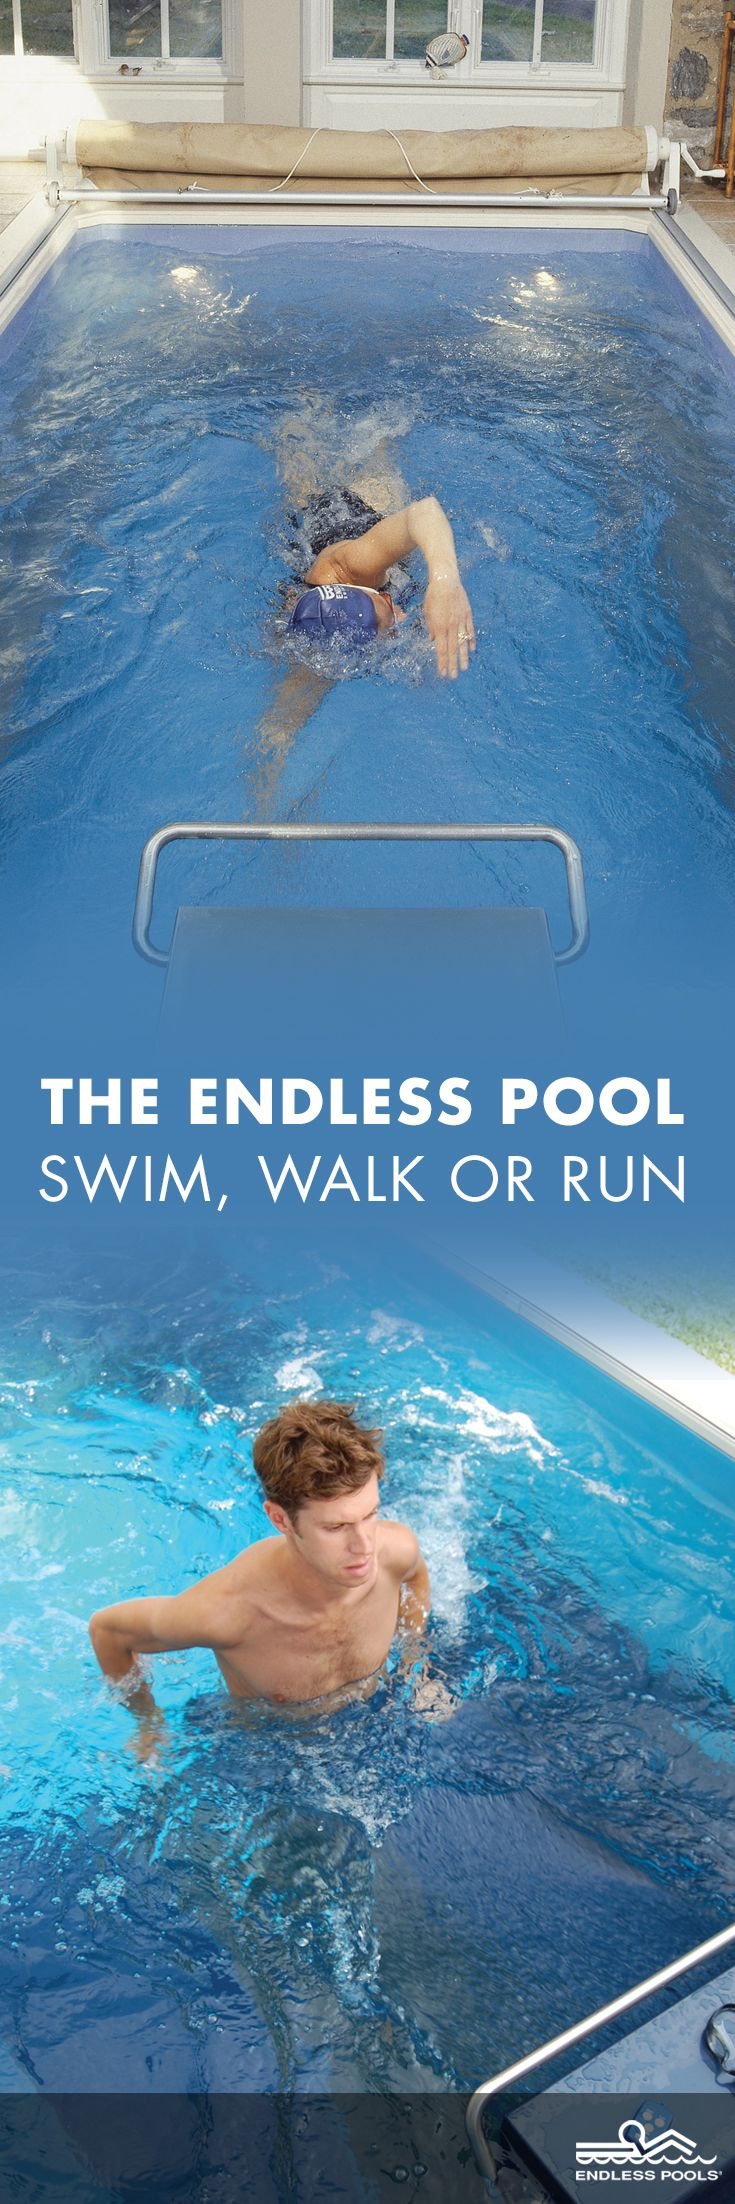 459 Best Images About Endless Pools On Pinterest Swim Endless Pools And Pools